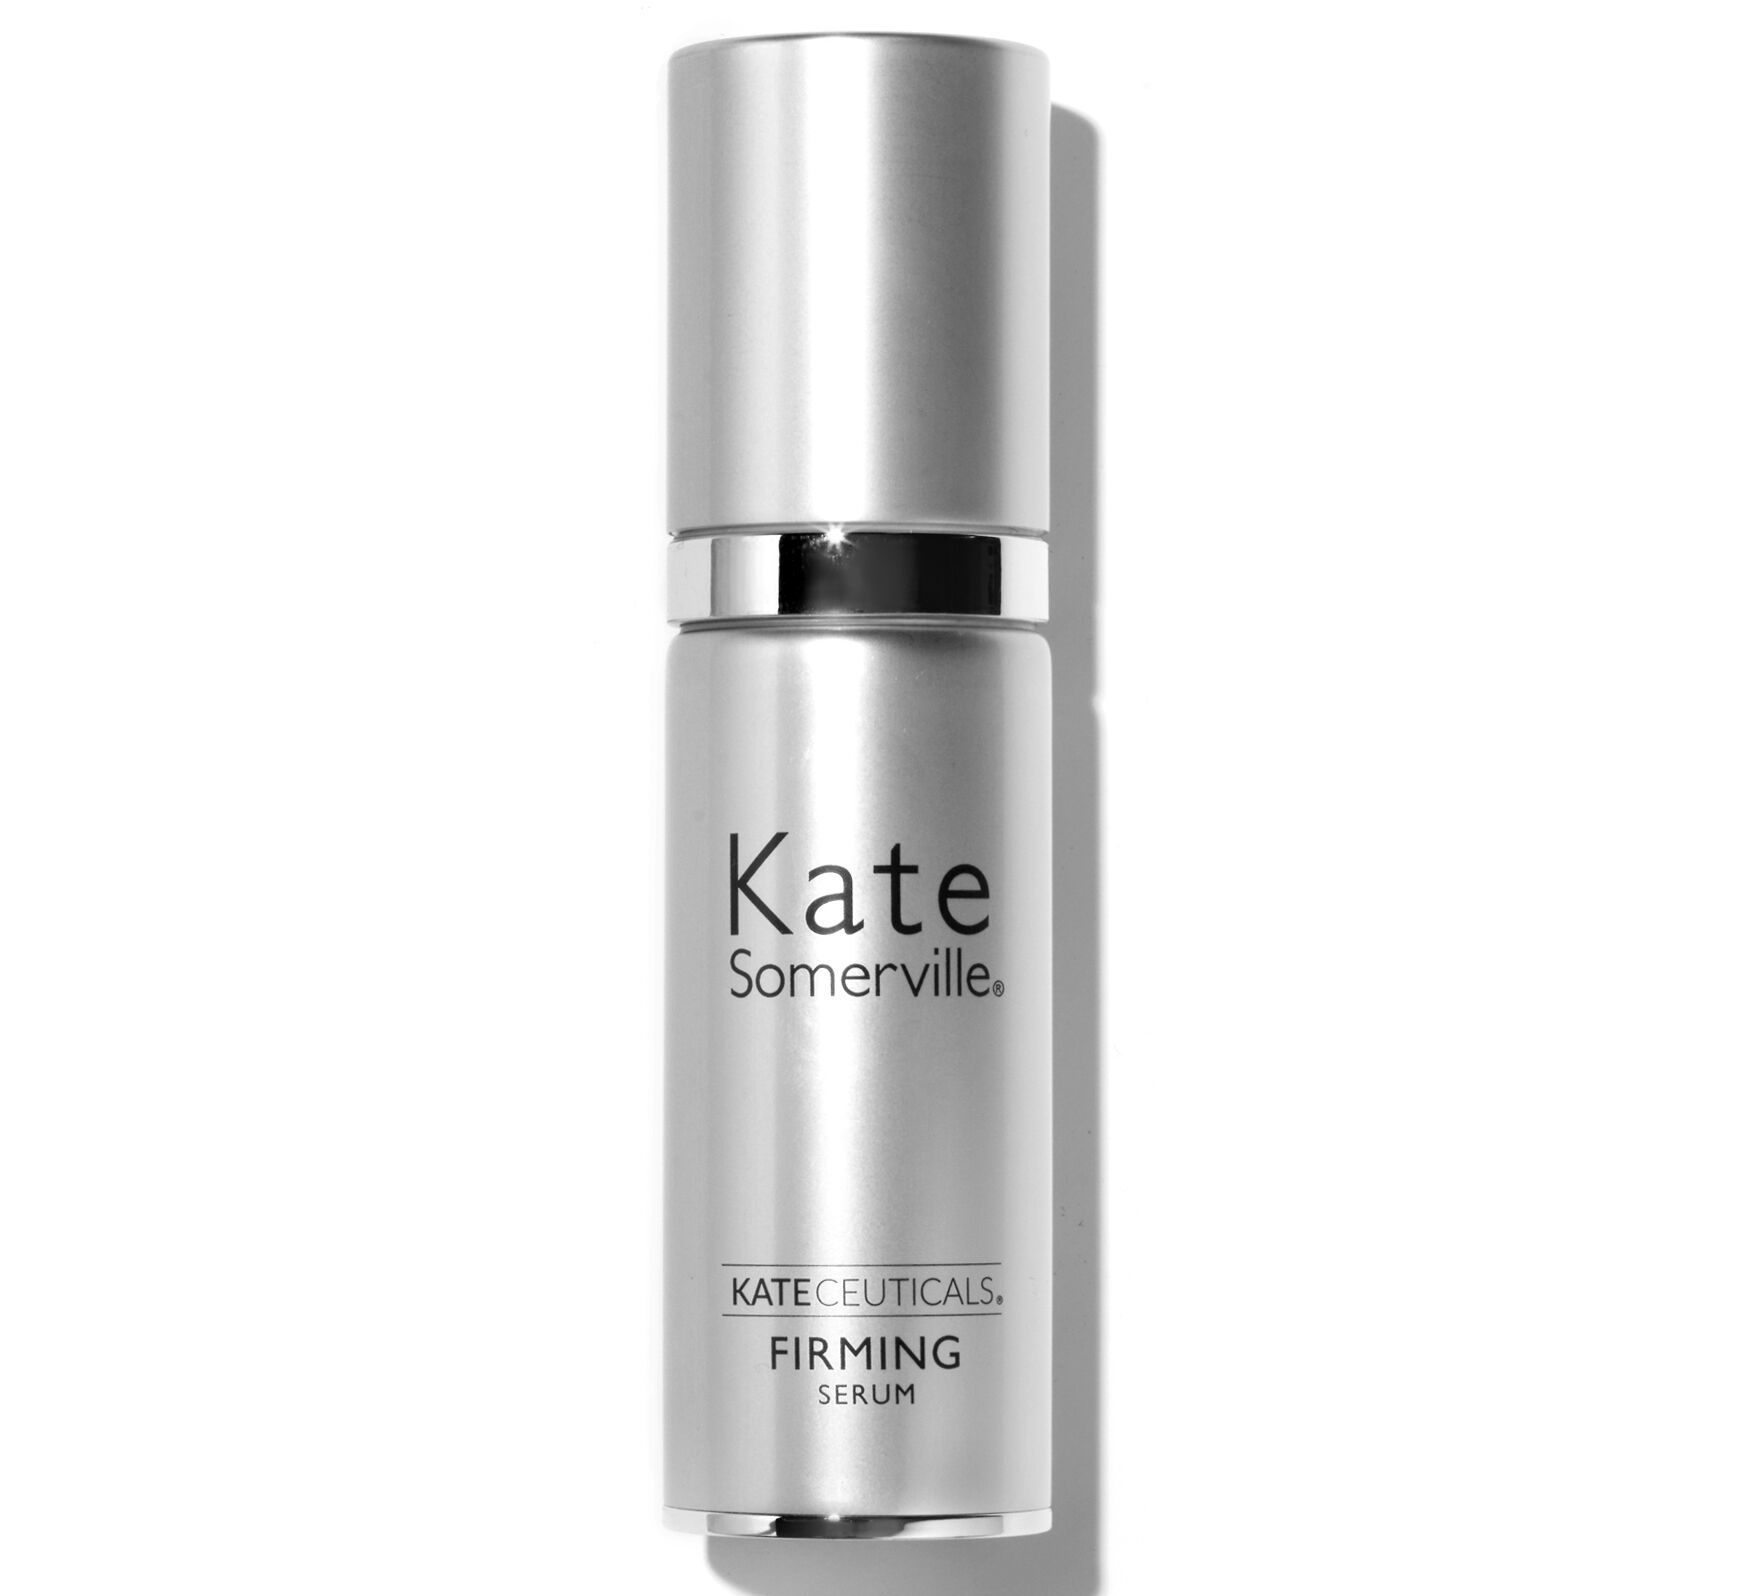 My Celebrity Life – Kate Somerville Skincare KateCeuticals Firming Serum